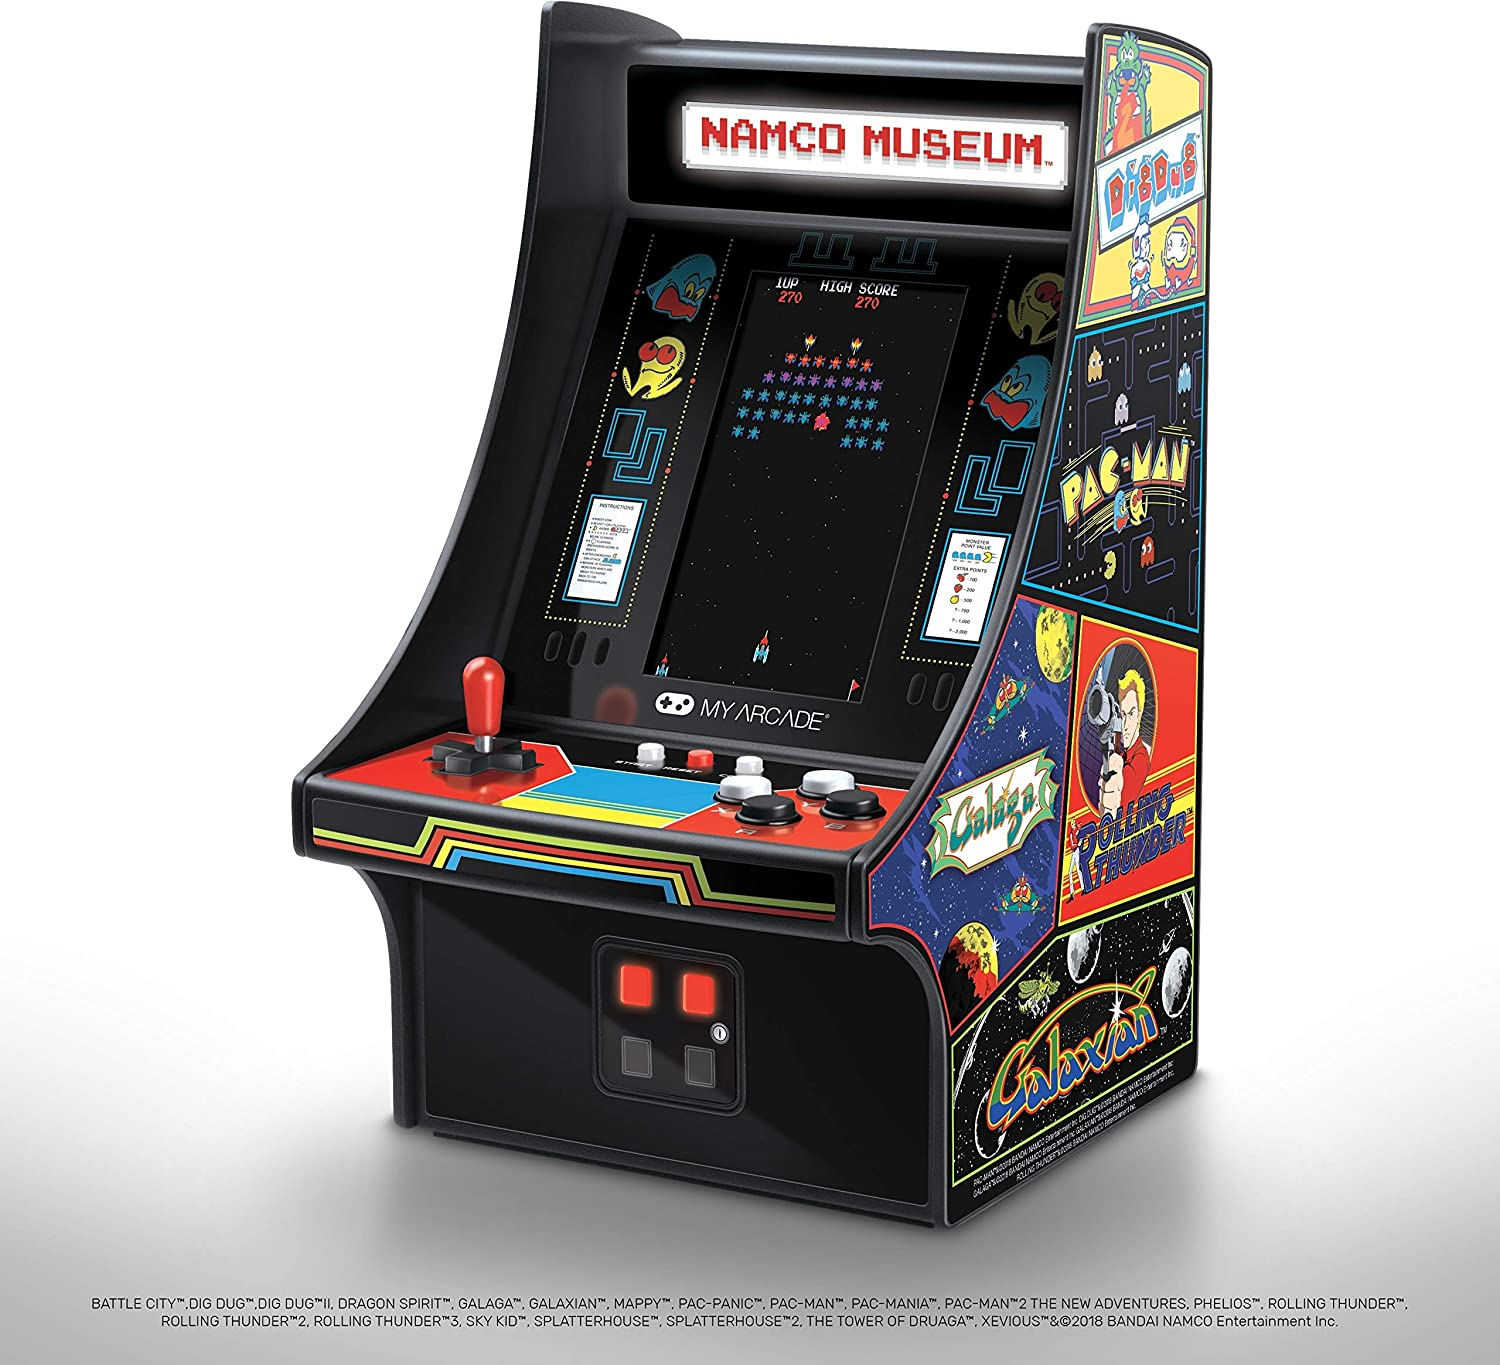 My Arcade Mini Player 10 Inch Arcade Machine: 20 Built In Games, Fully Playable, Pac-Man, Galaga, Mappy and More, 4.25 Inch Color Display, Speakers, Volume Controls, Headphone Jack, Micro USB Powered